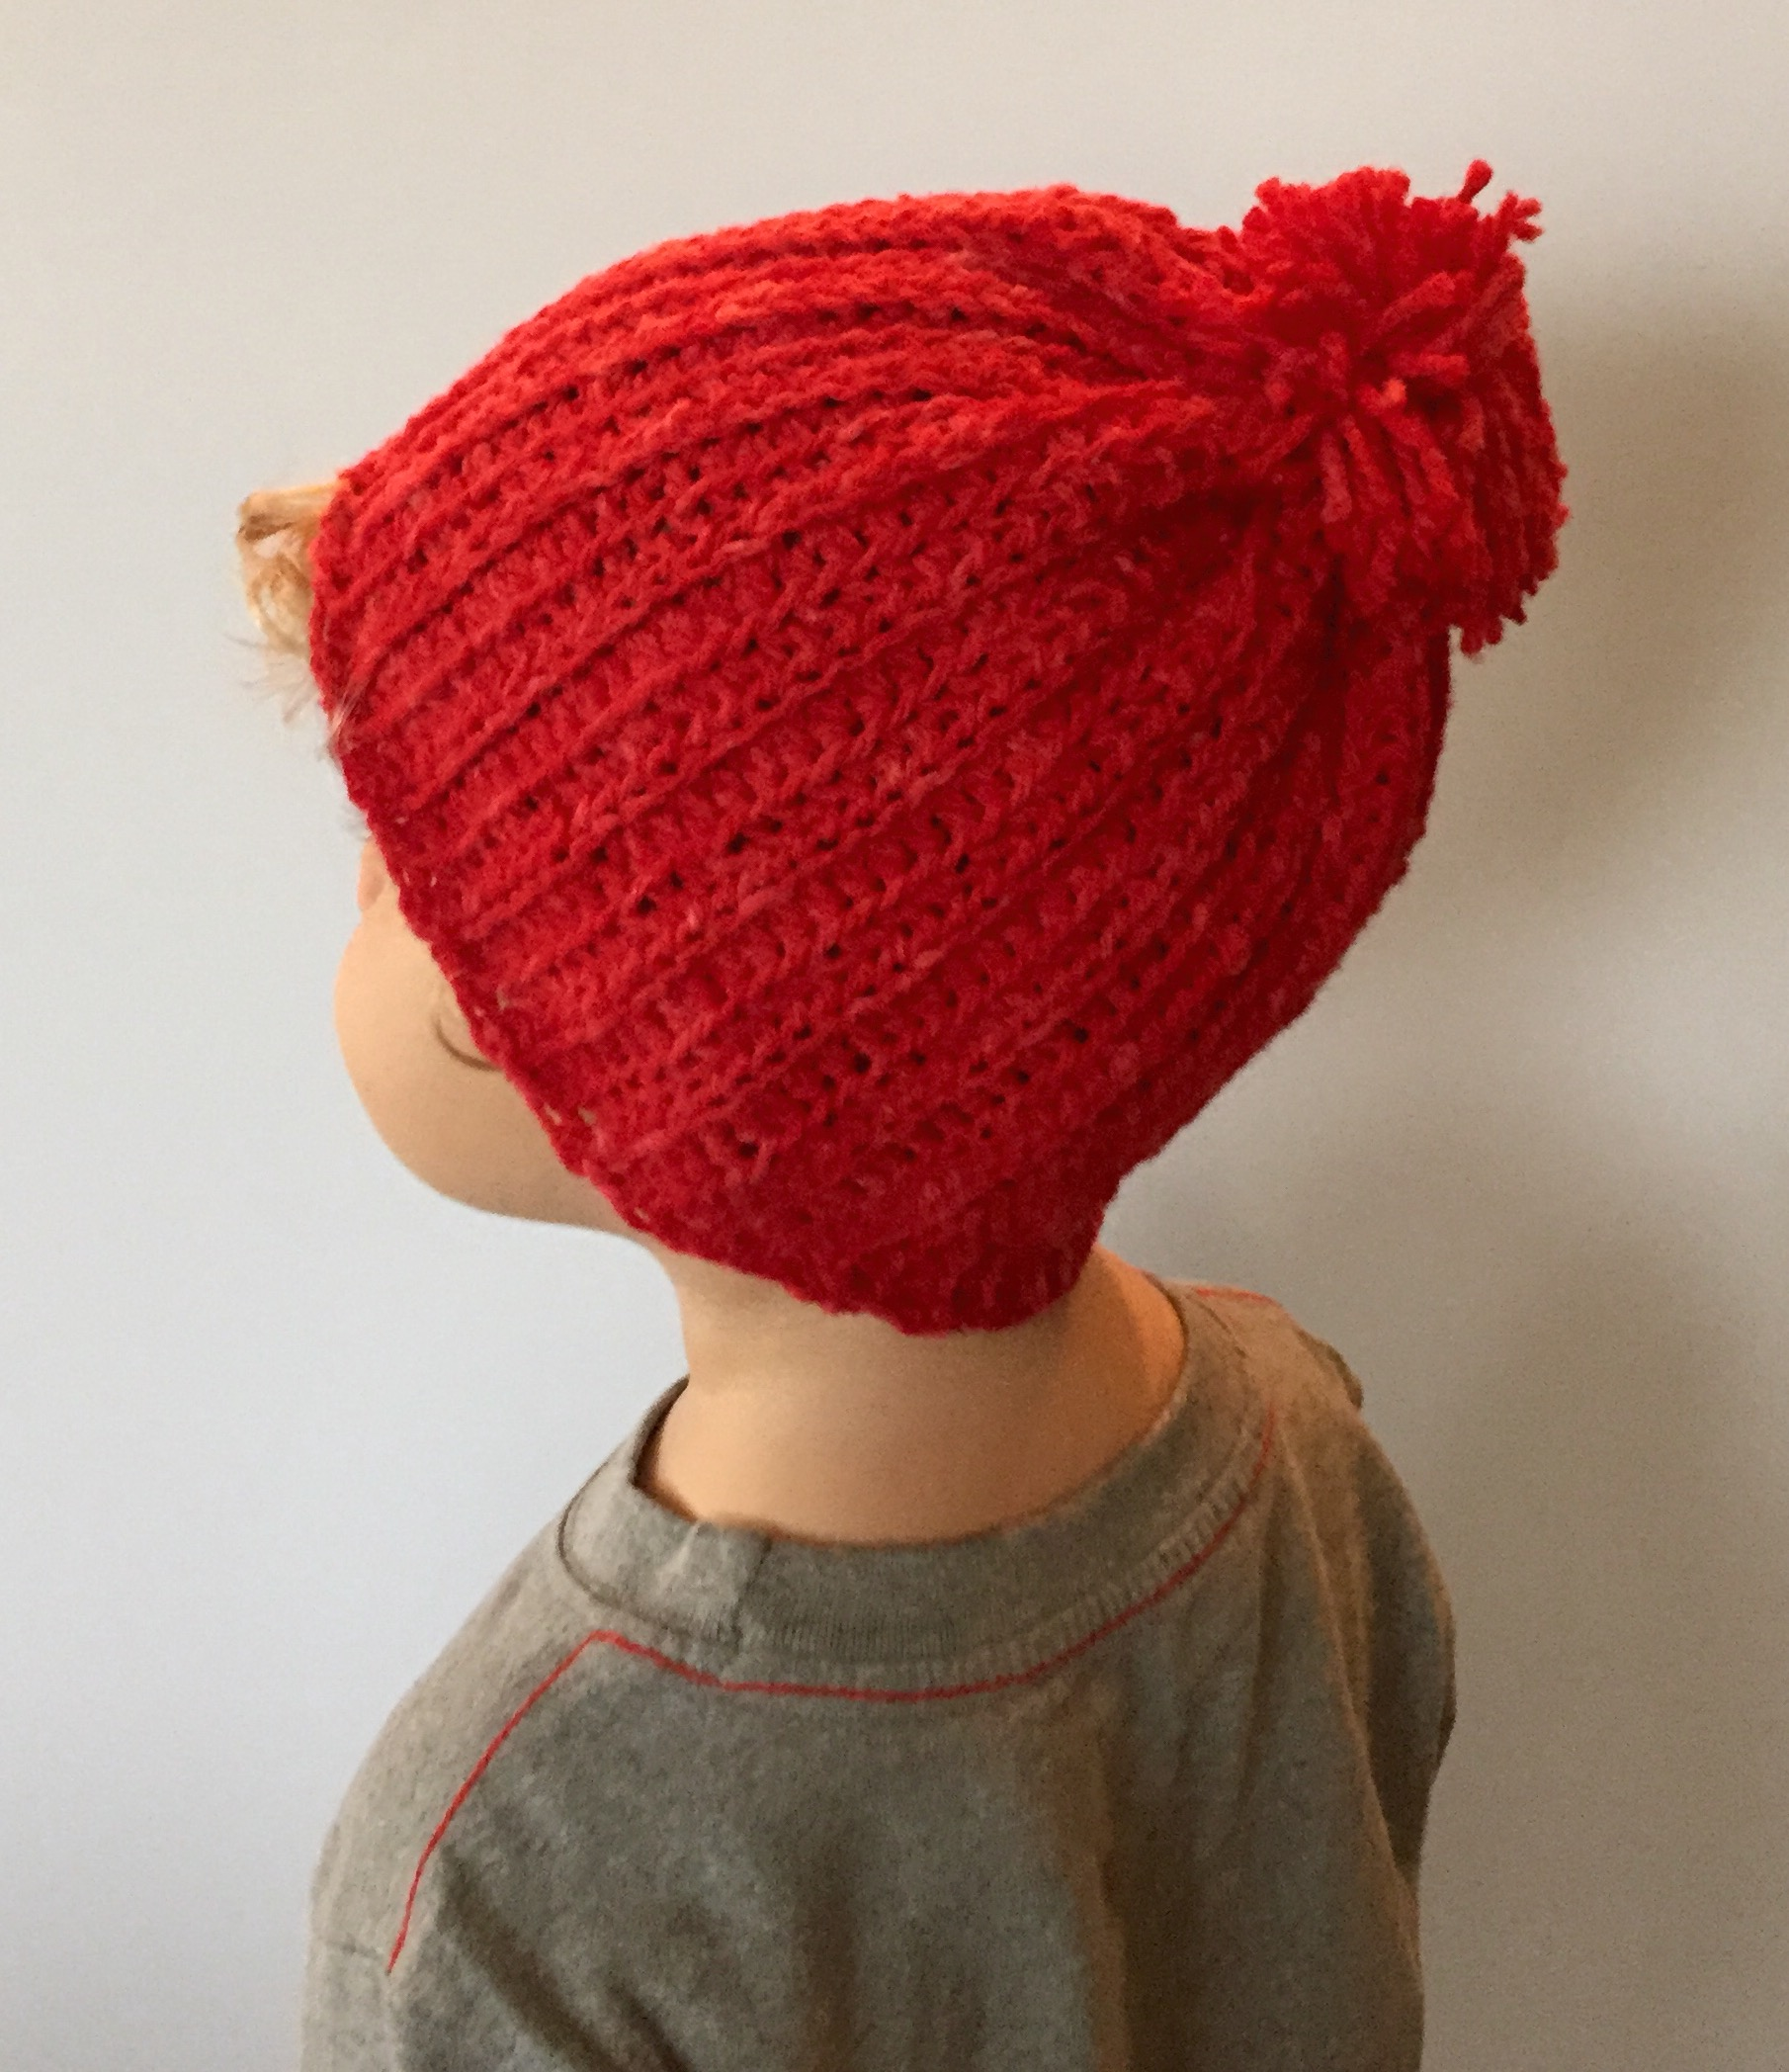 e0fe6b9a0fe Crochet Pattern - Cade s Ribbed Hat with Pom Pom for Toddler